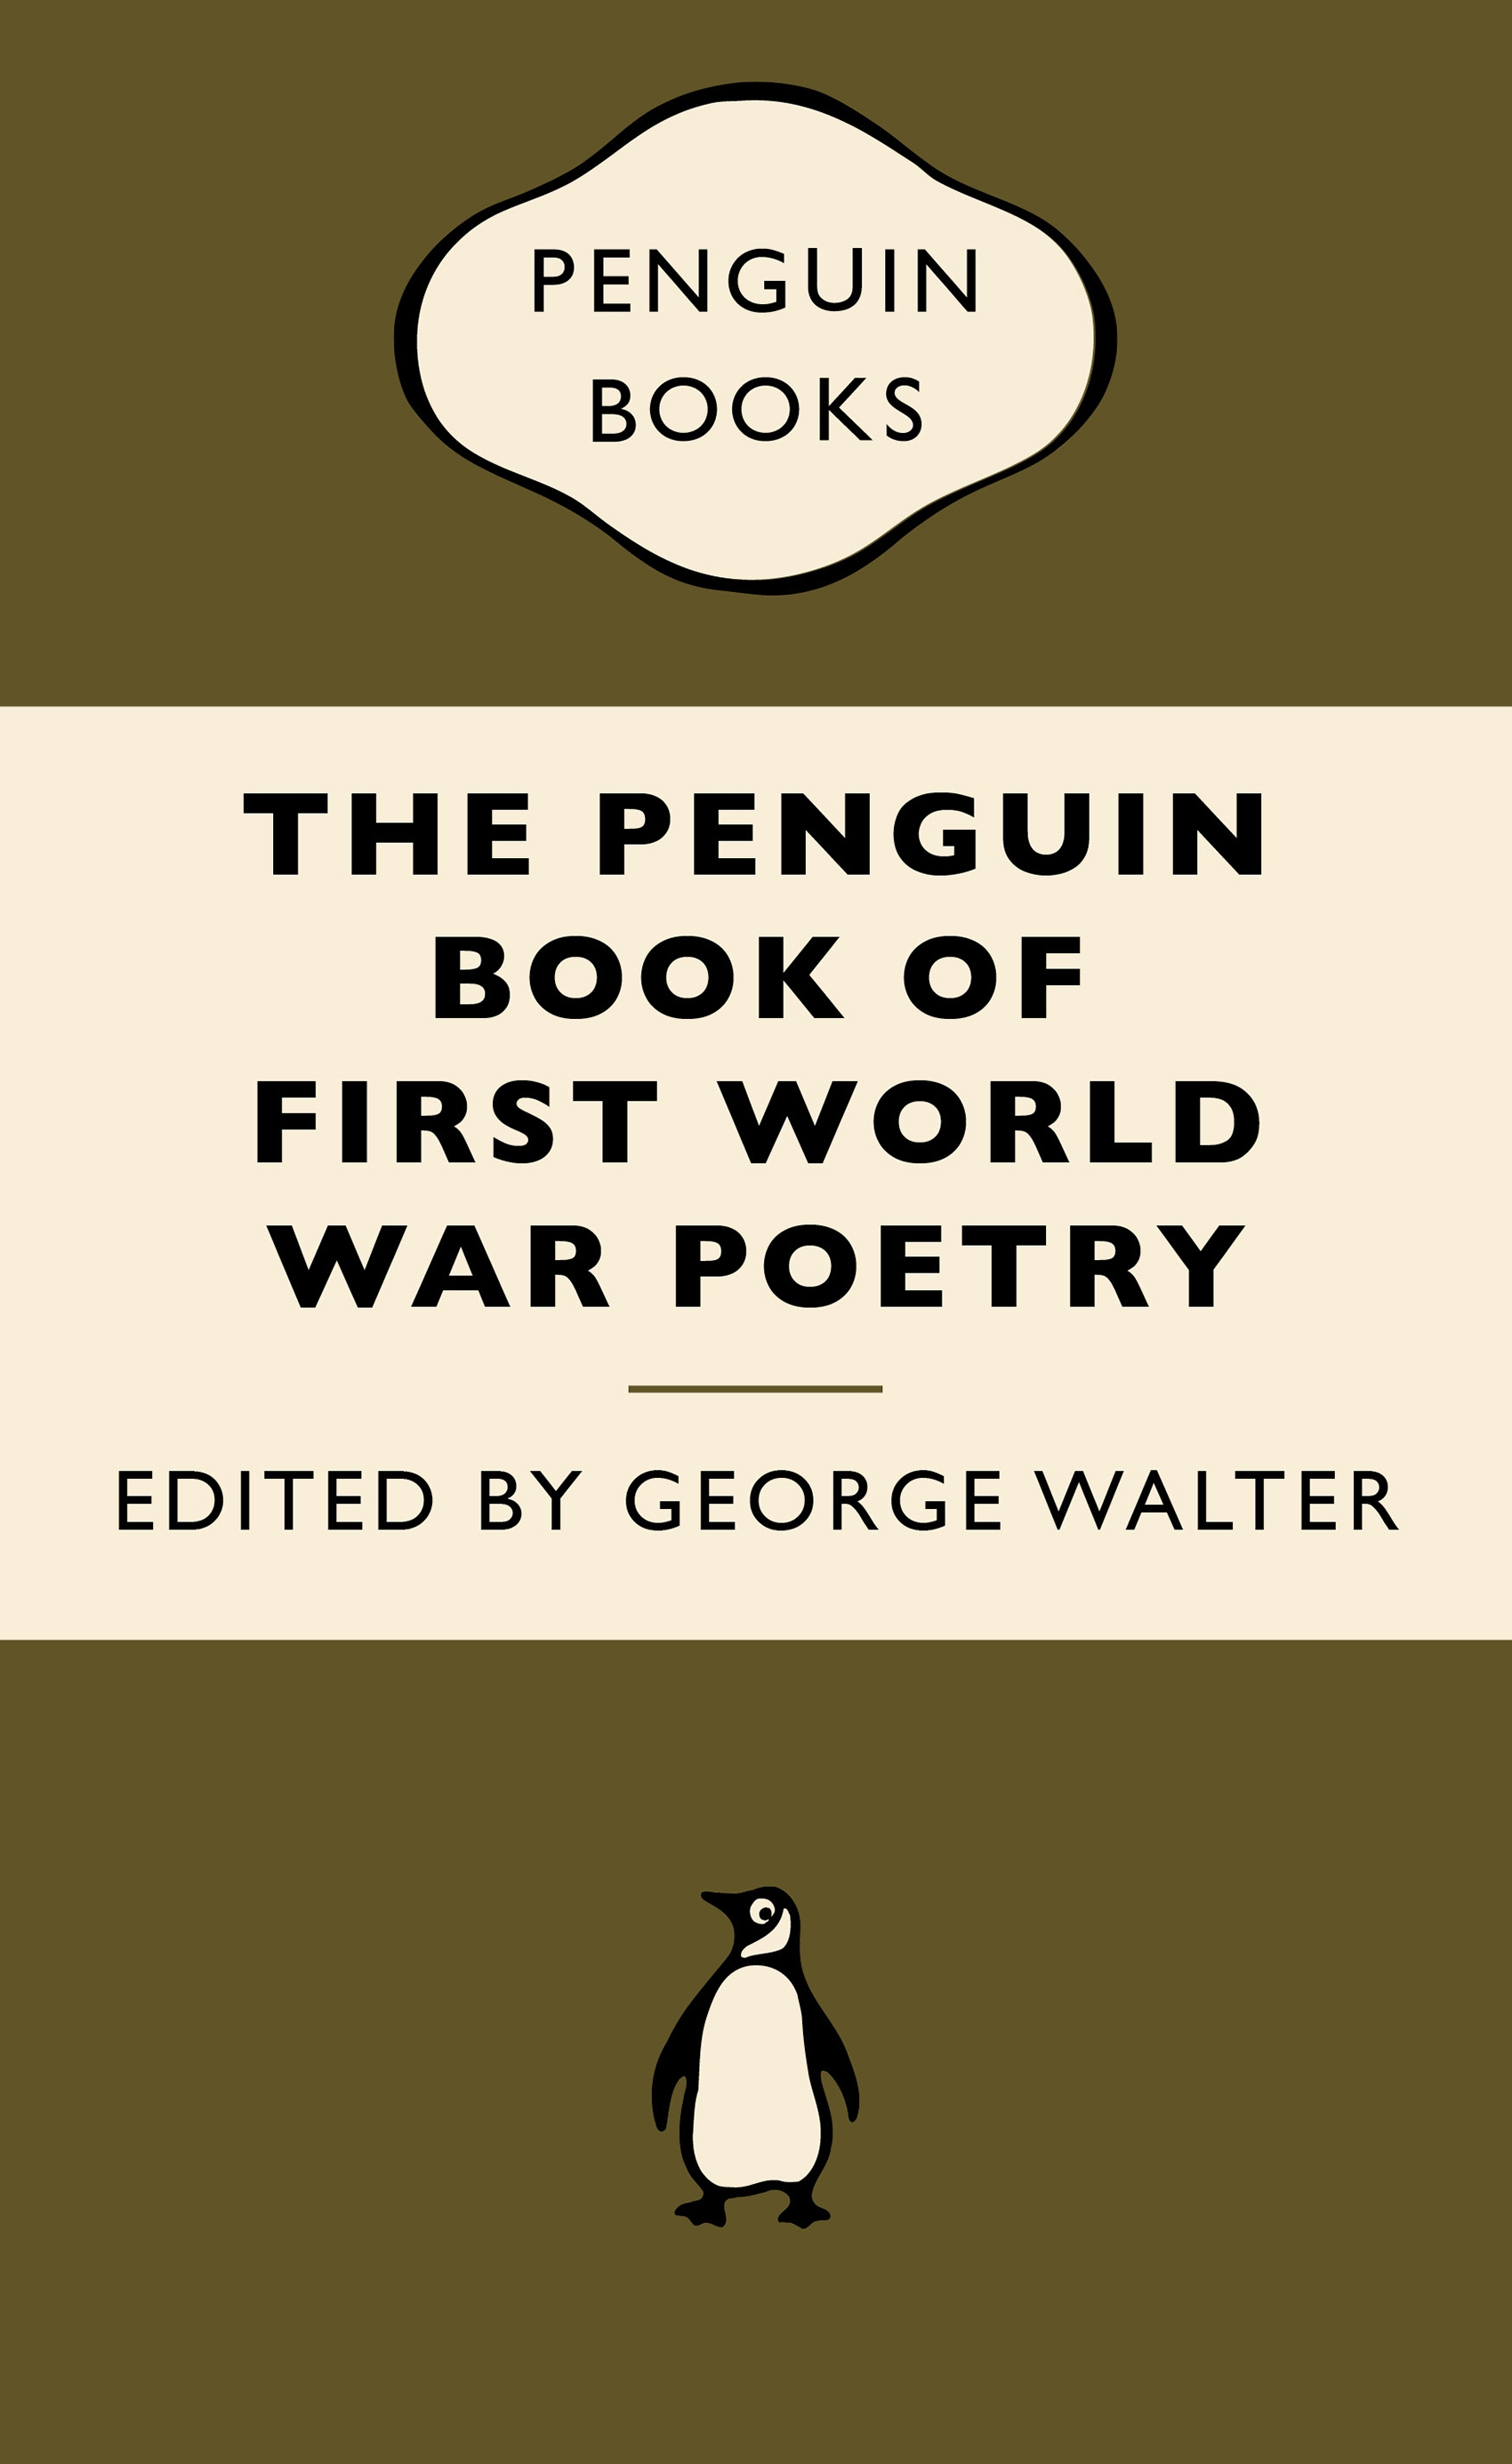 first world war poetry The first world war and literature edit 26 88  released his first collection of poetry in a book called behind the eyes in 1921.